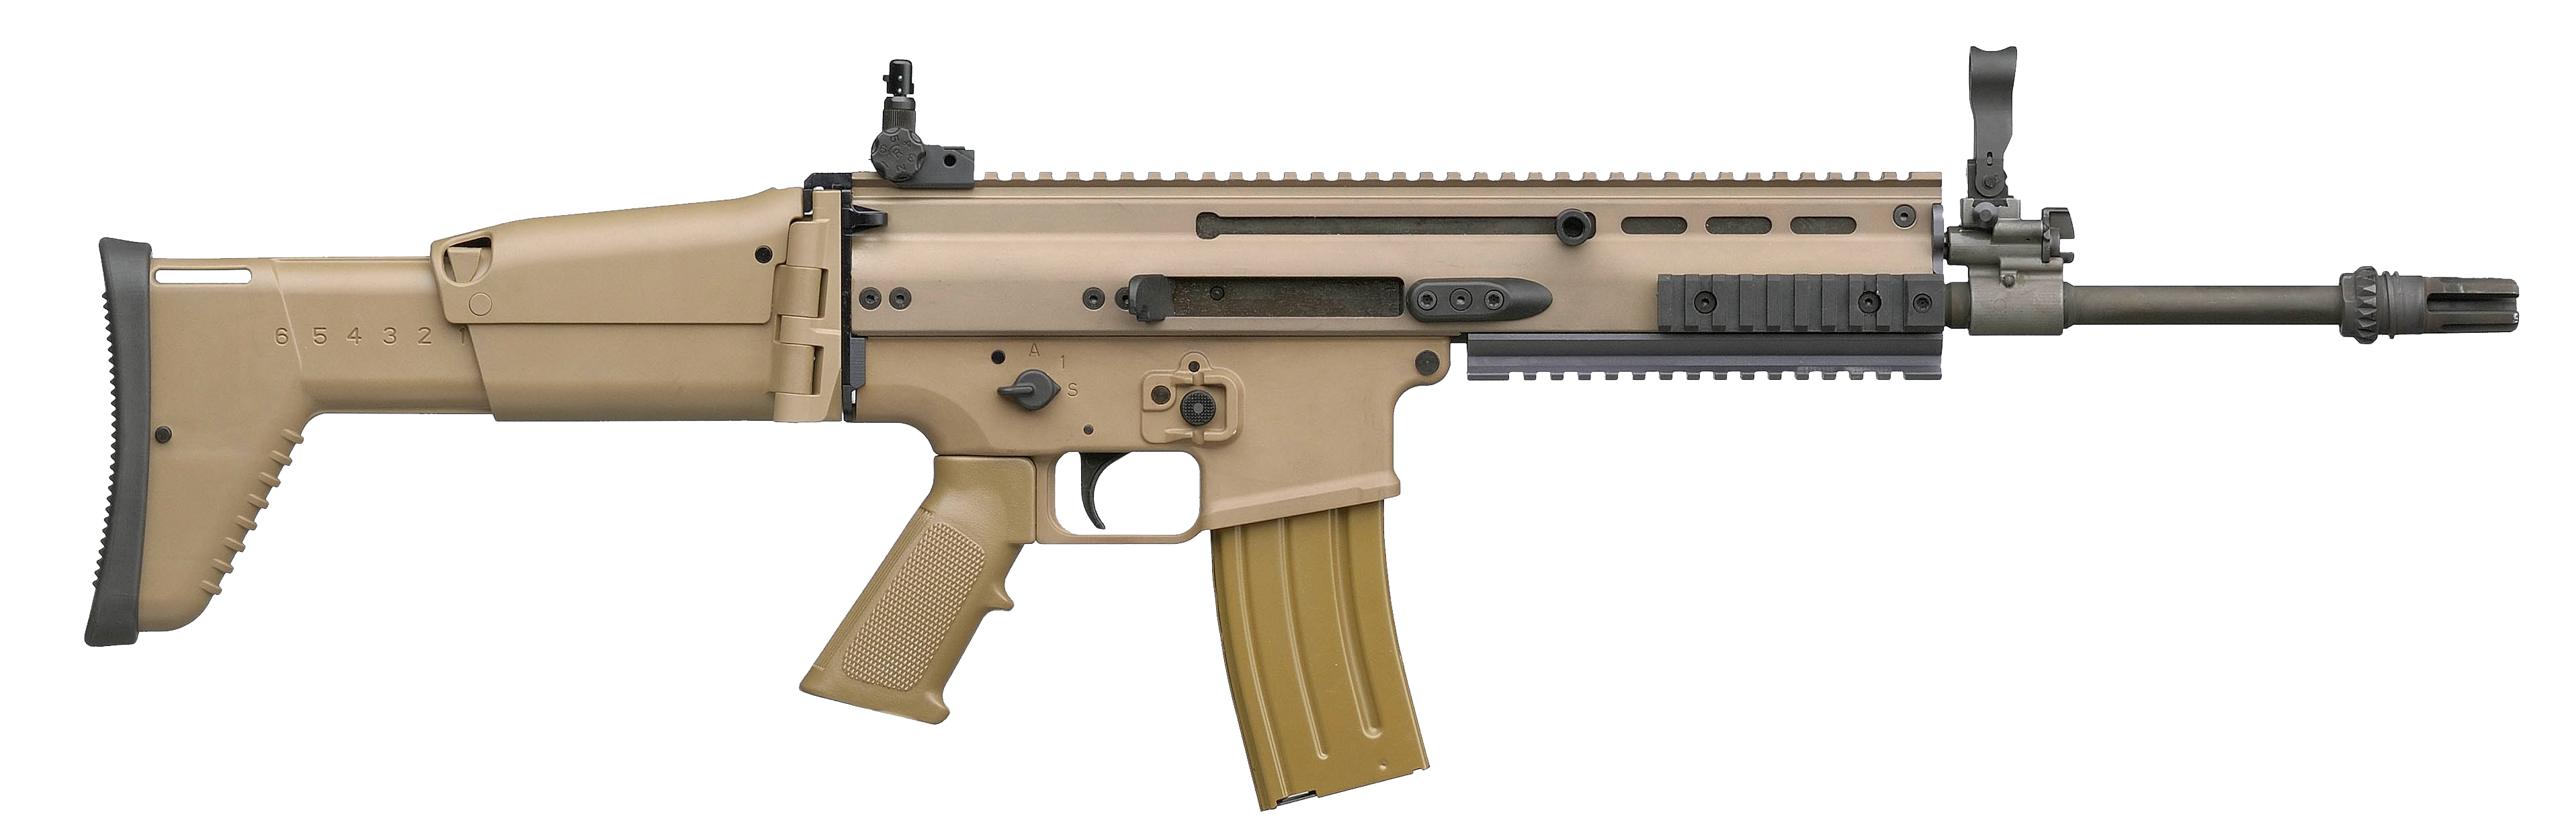 rifle transparent png